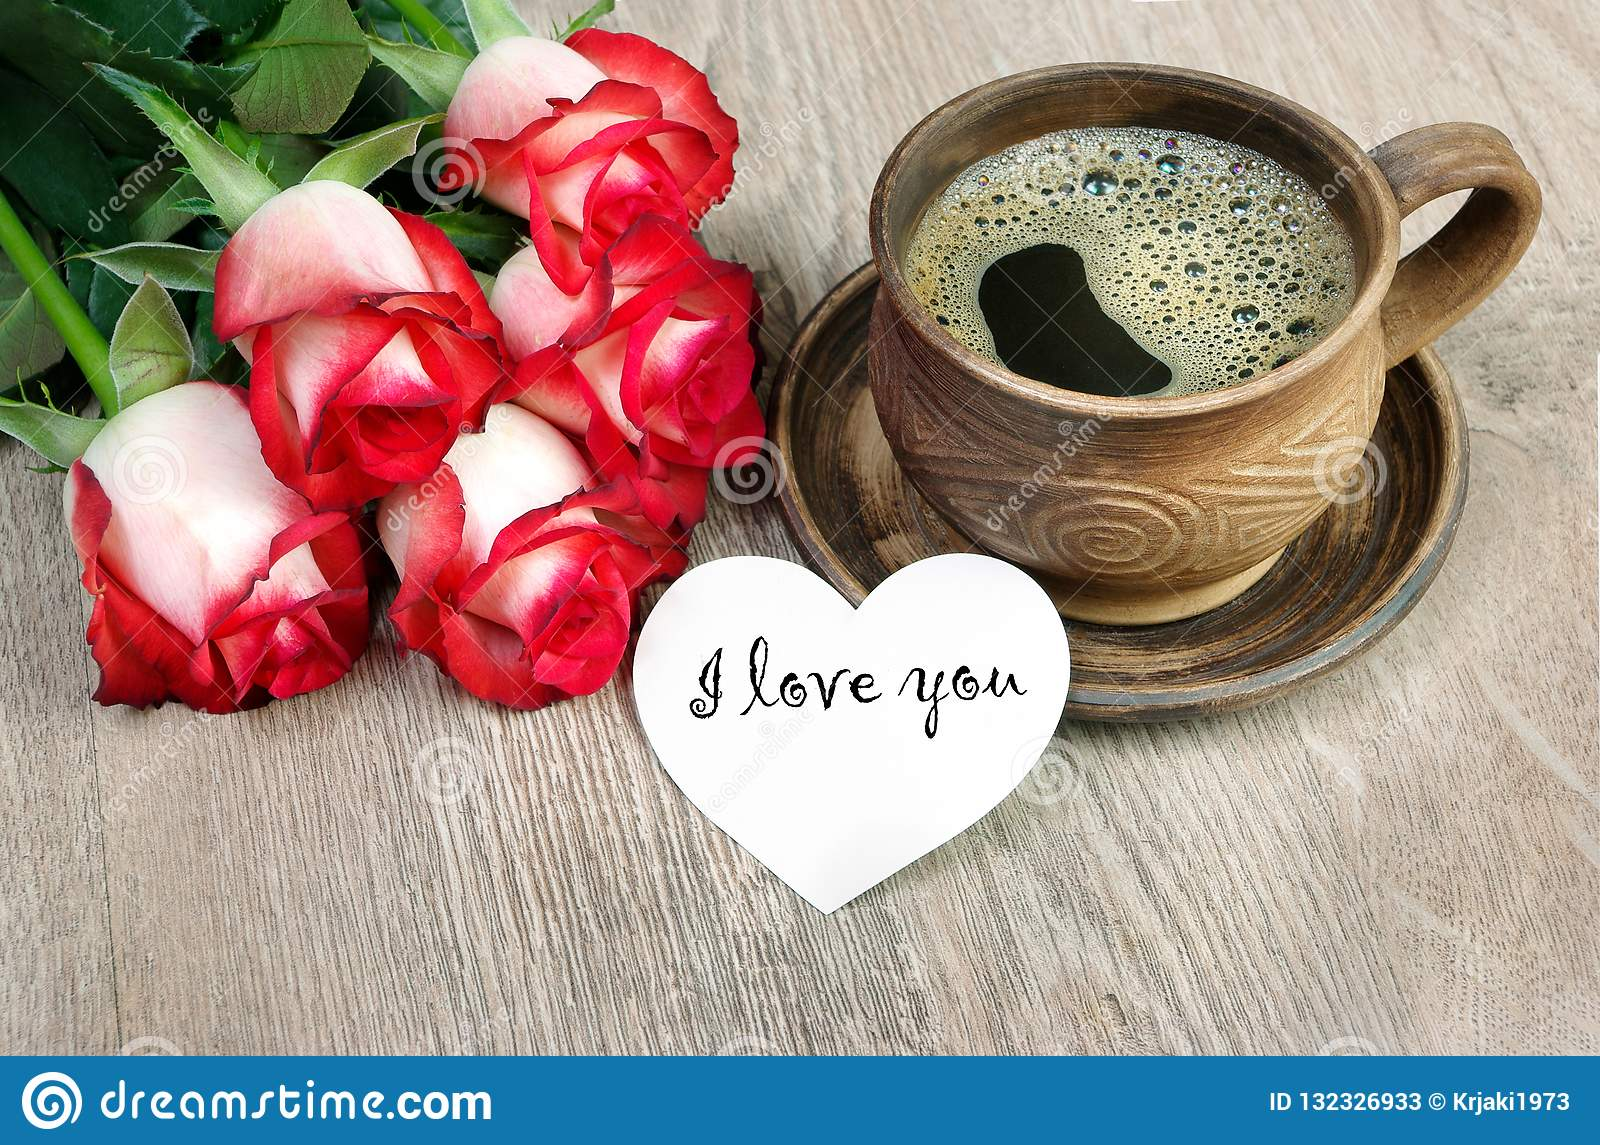 Good Morning A Cup Of Coffee And A Red Roses On A Wooden Table I